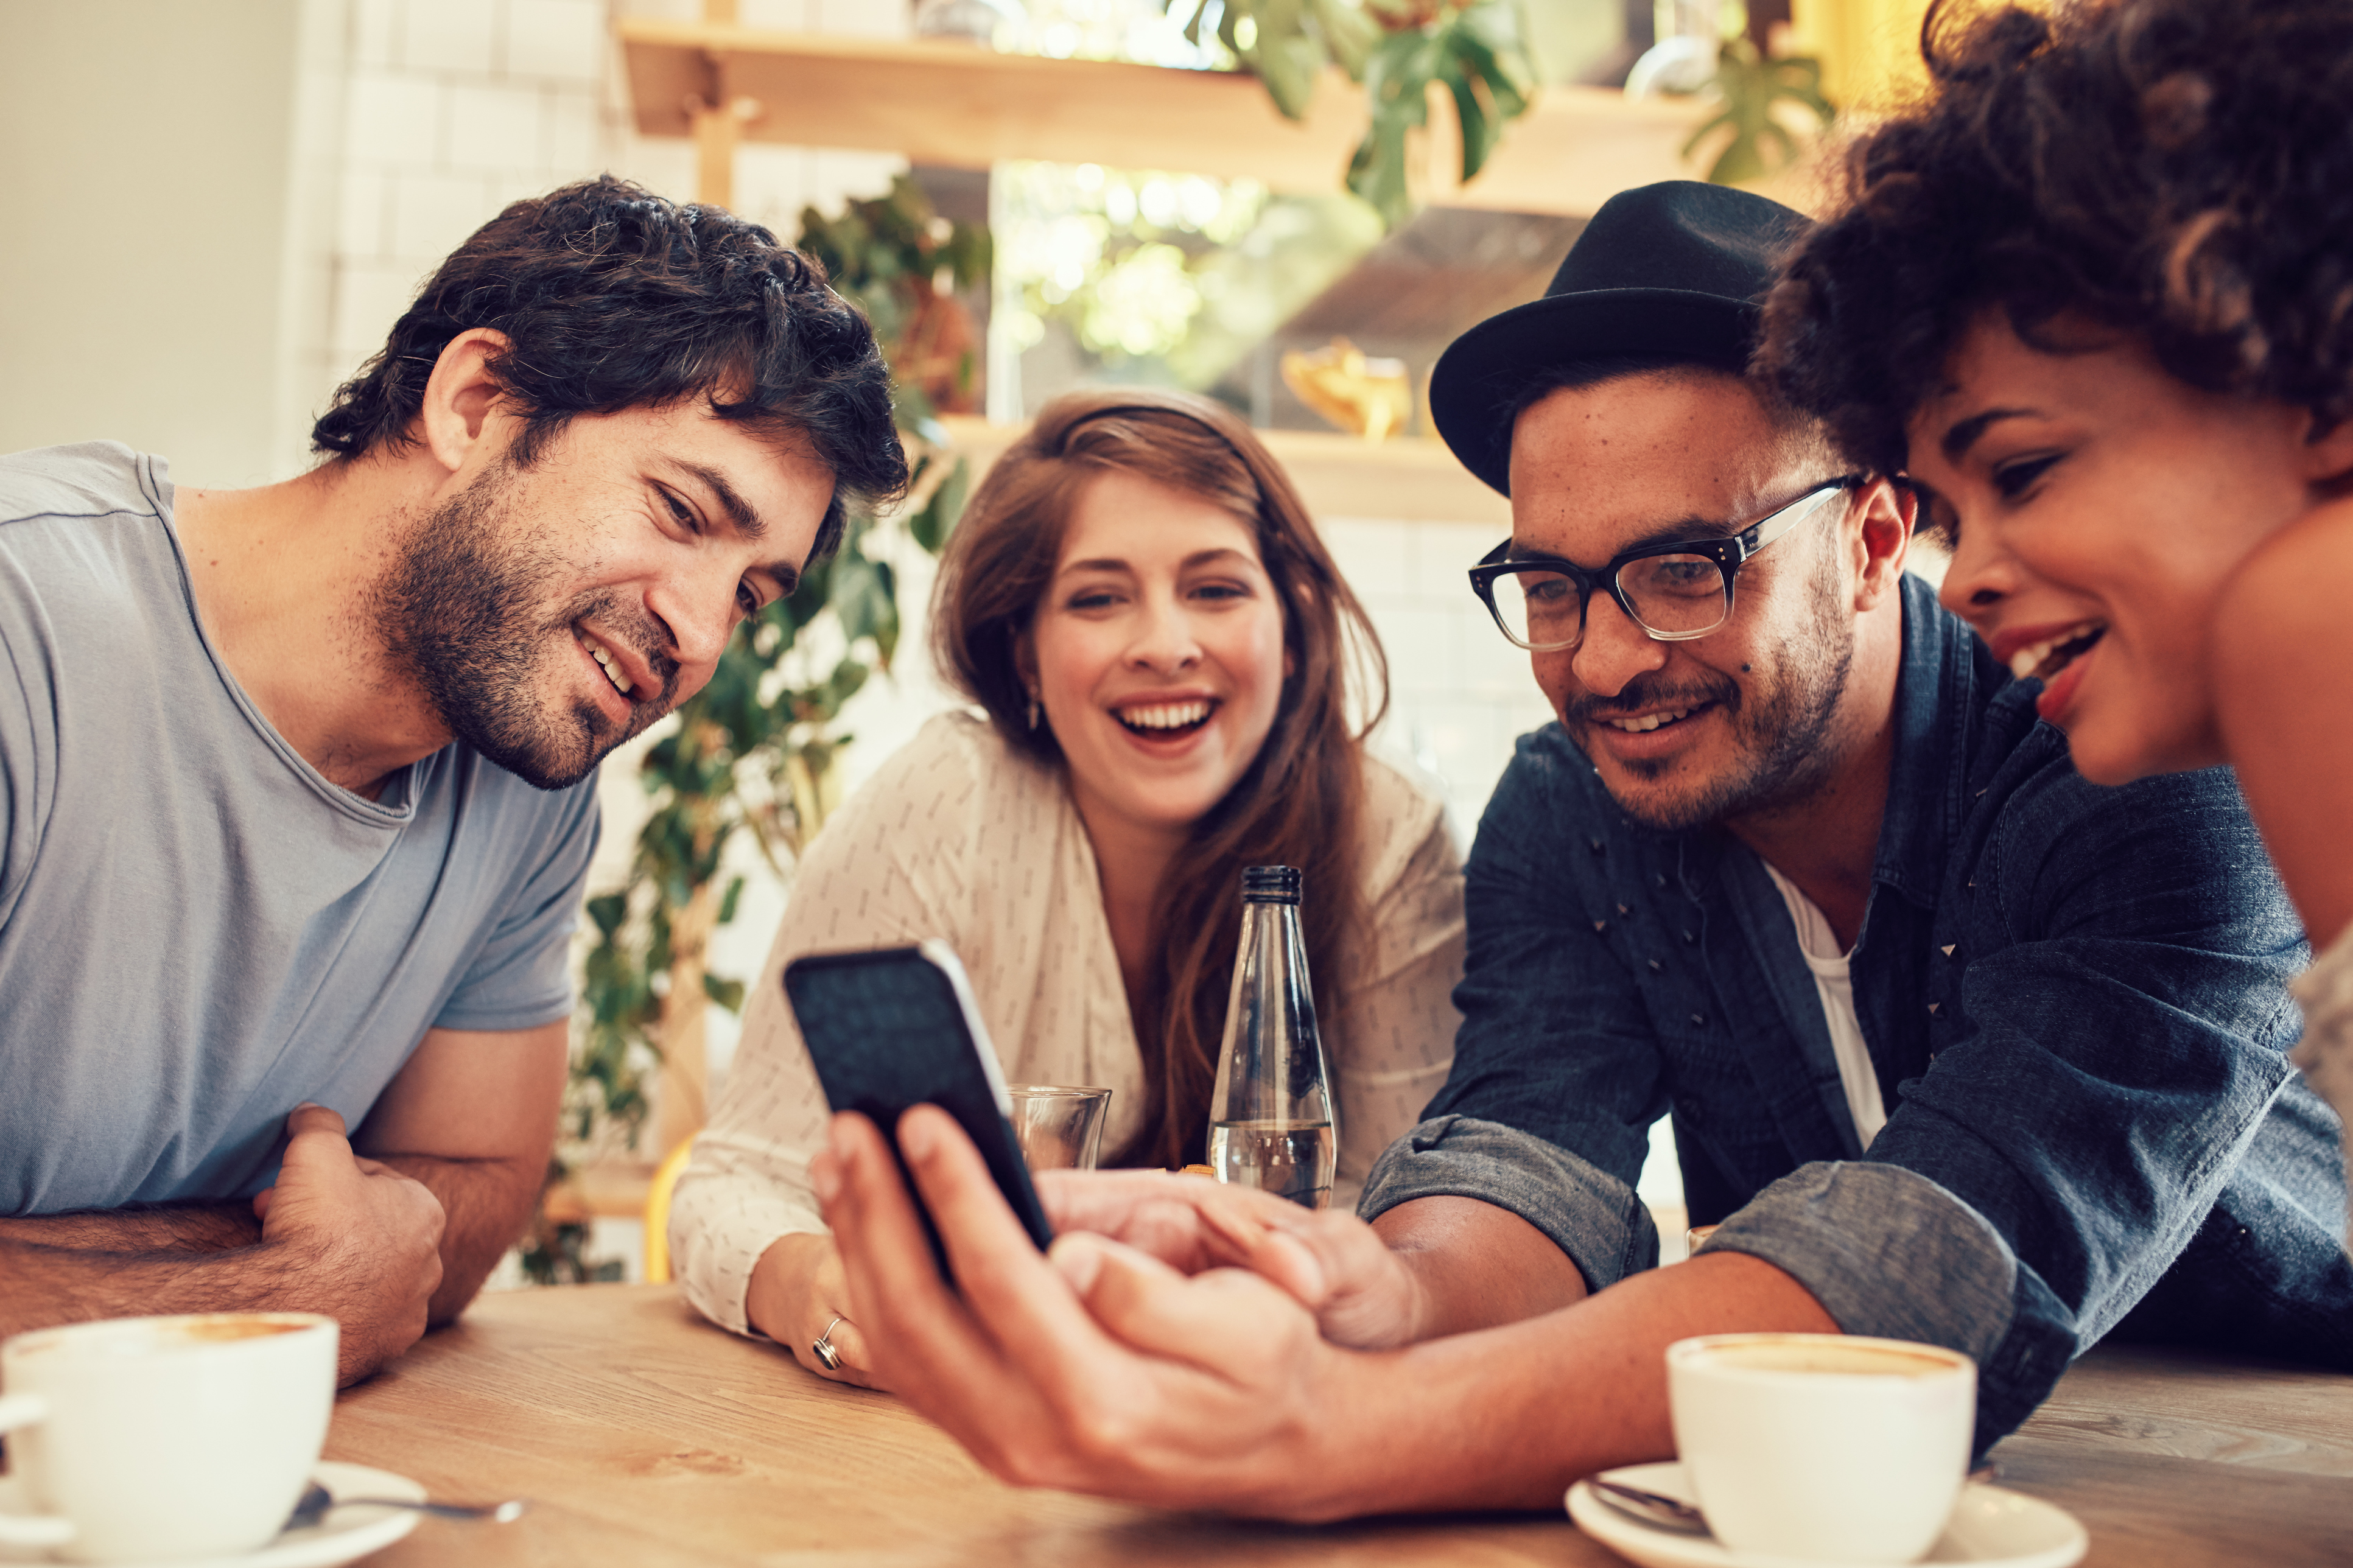 Group of diverse people looking at smartphone